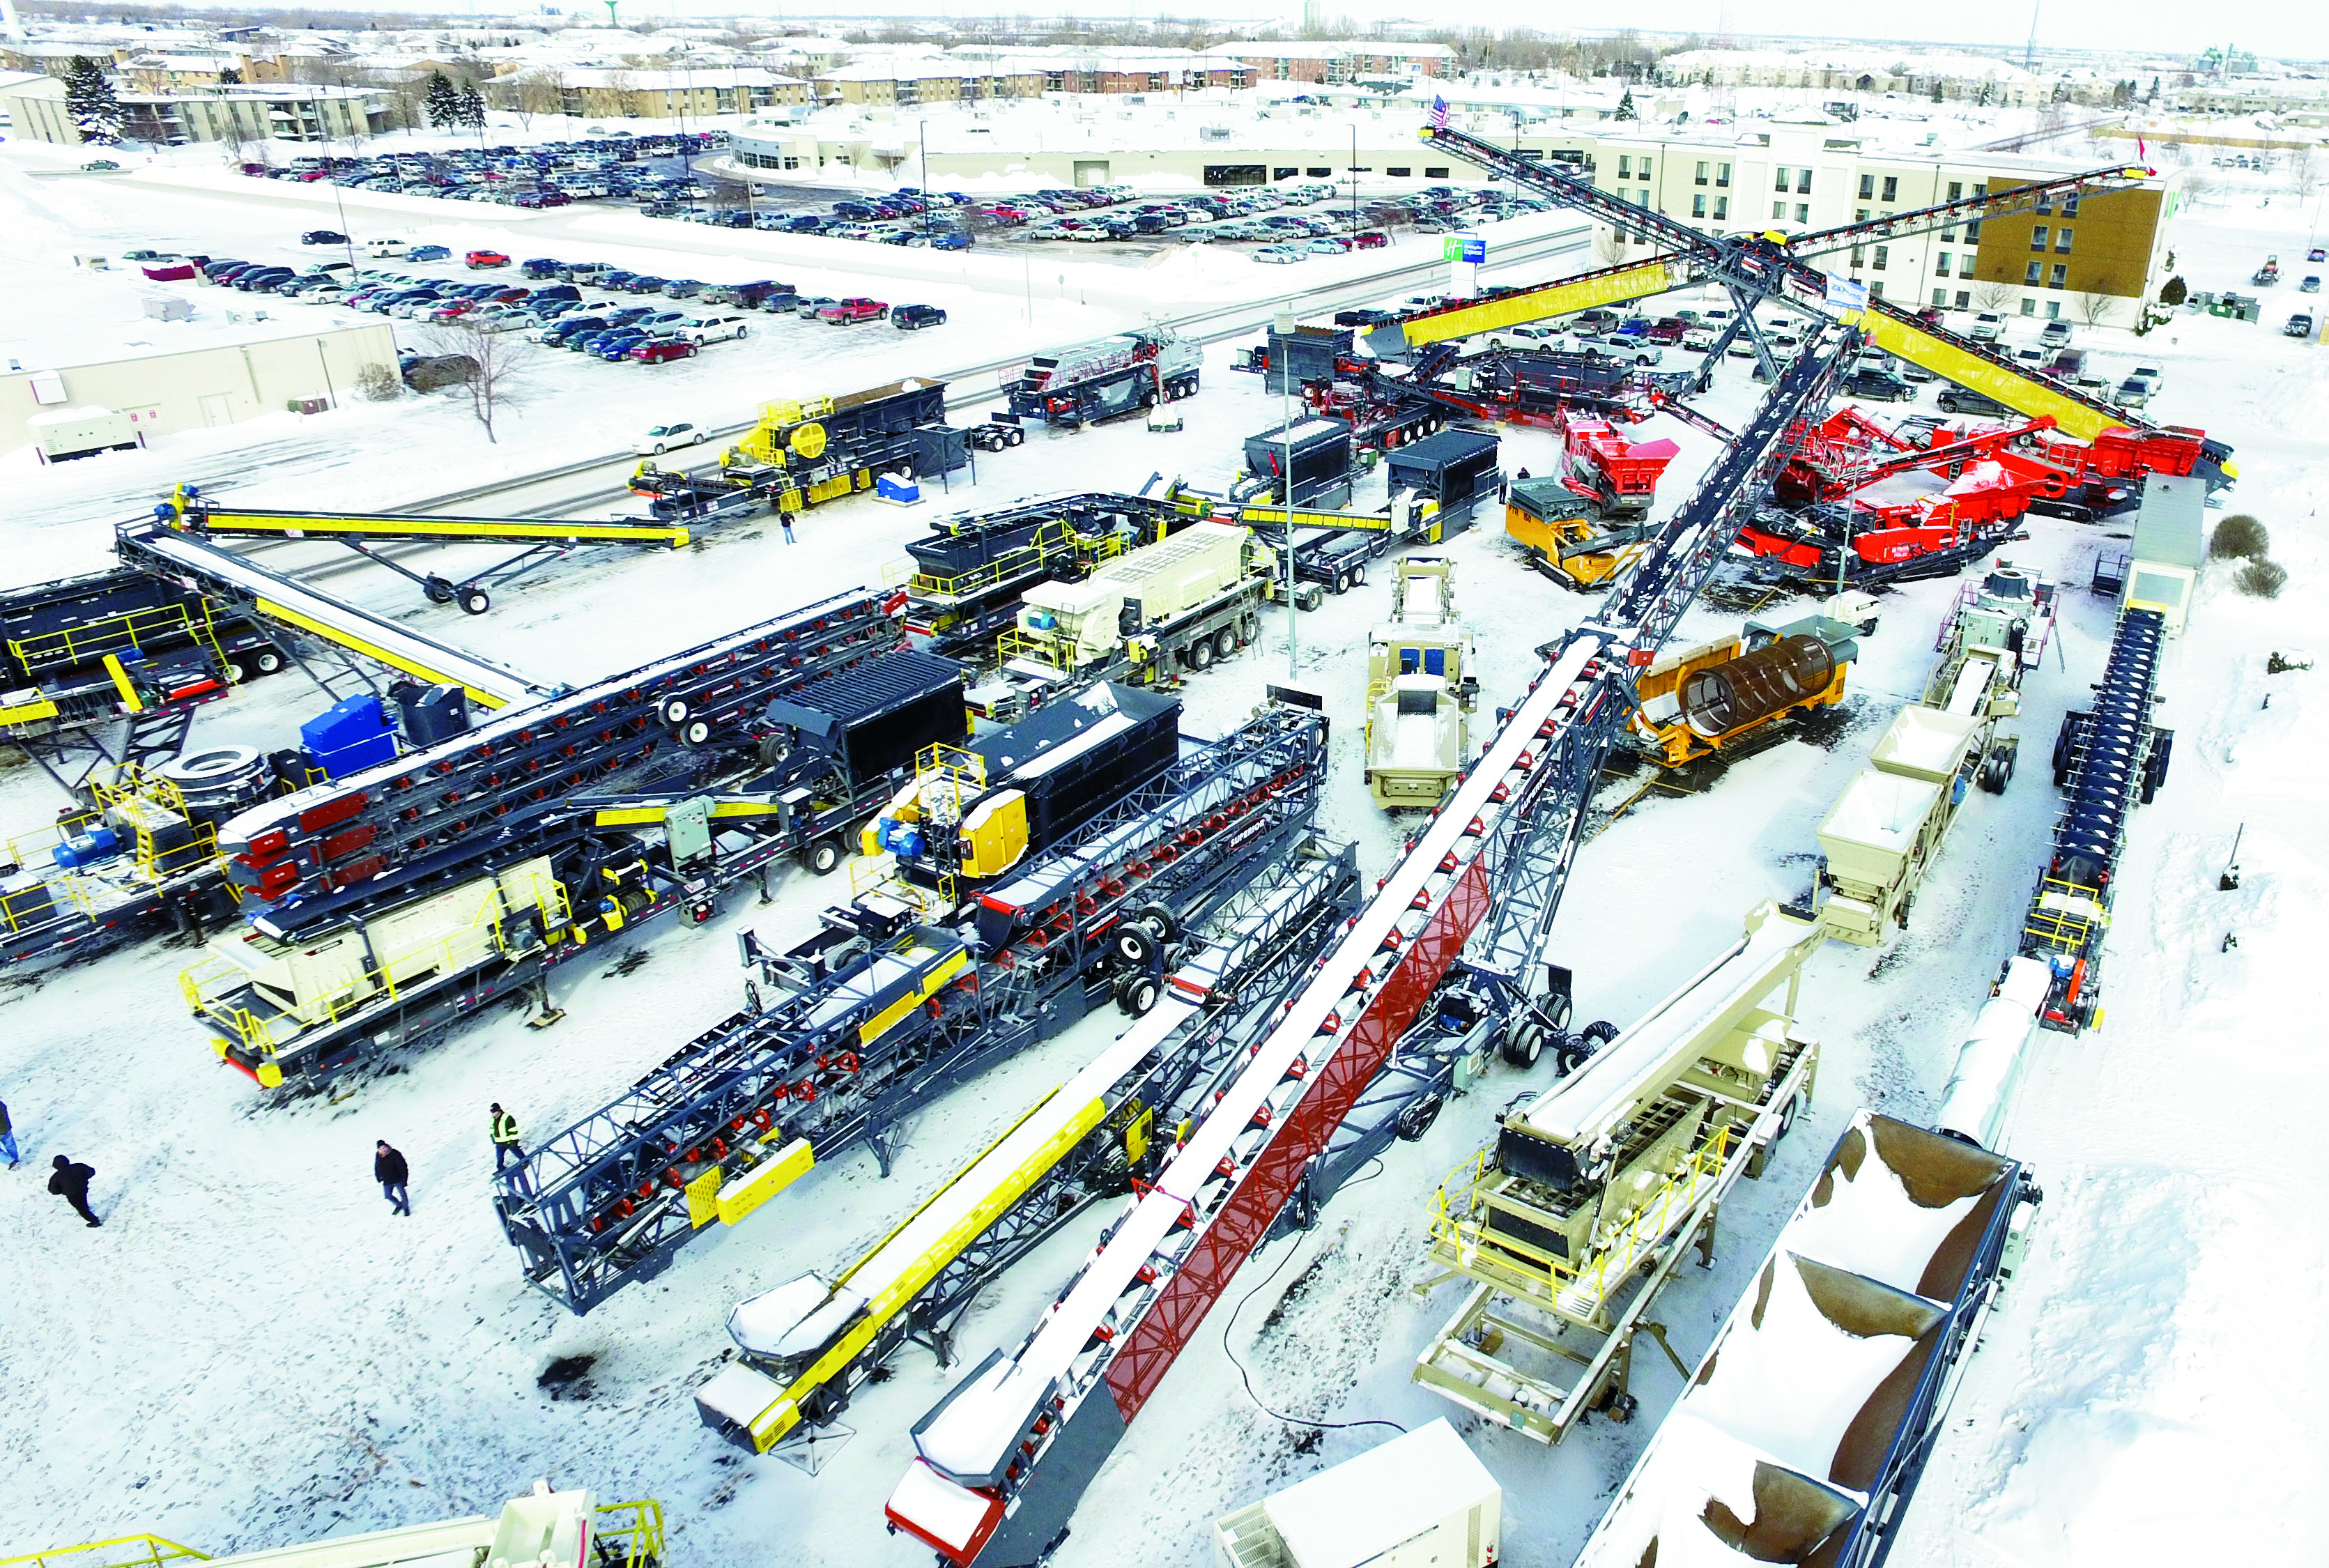 A lot full of construction equipment was on display during the expo